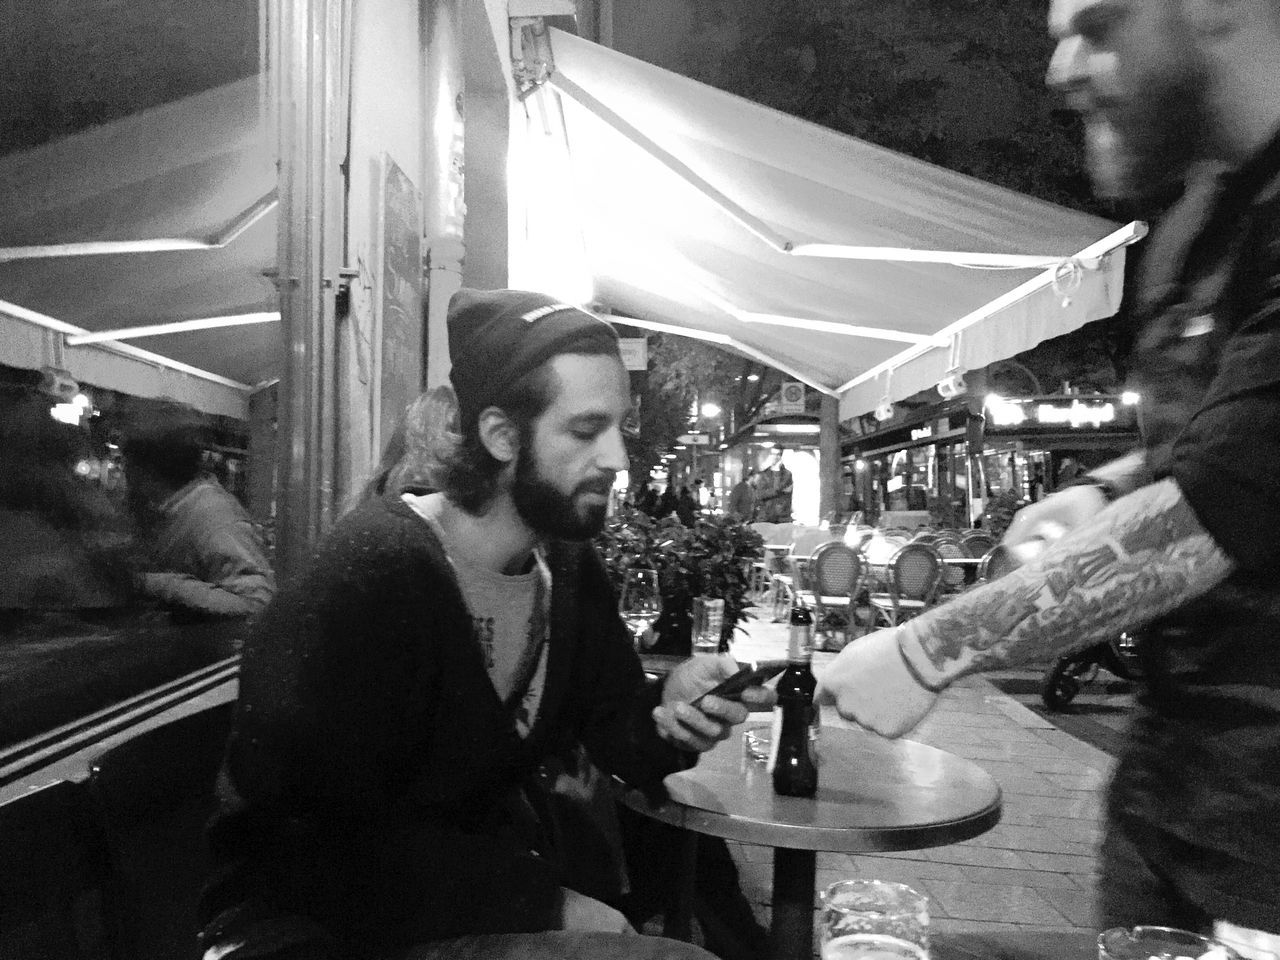 Drinks Nightlife Streetphotography Hanging Out Cocktails Meeting Friends